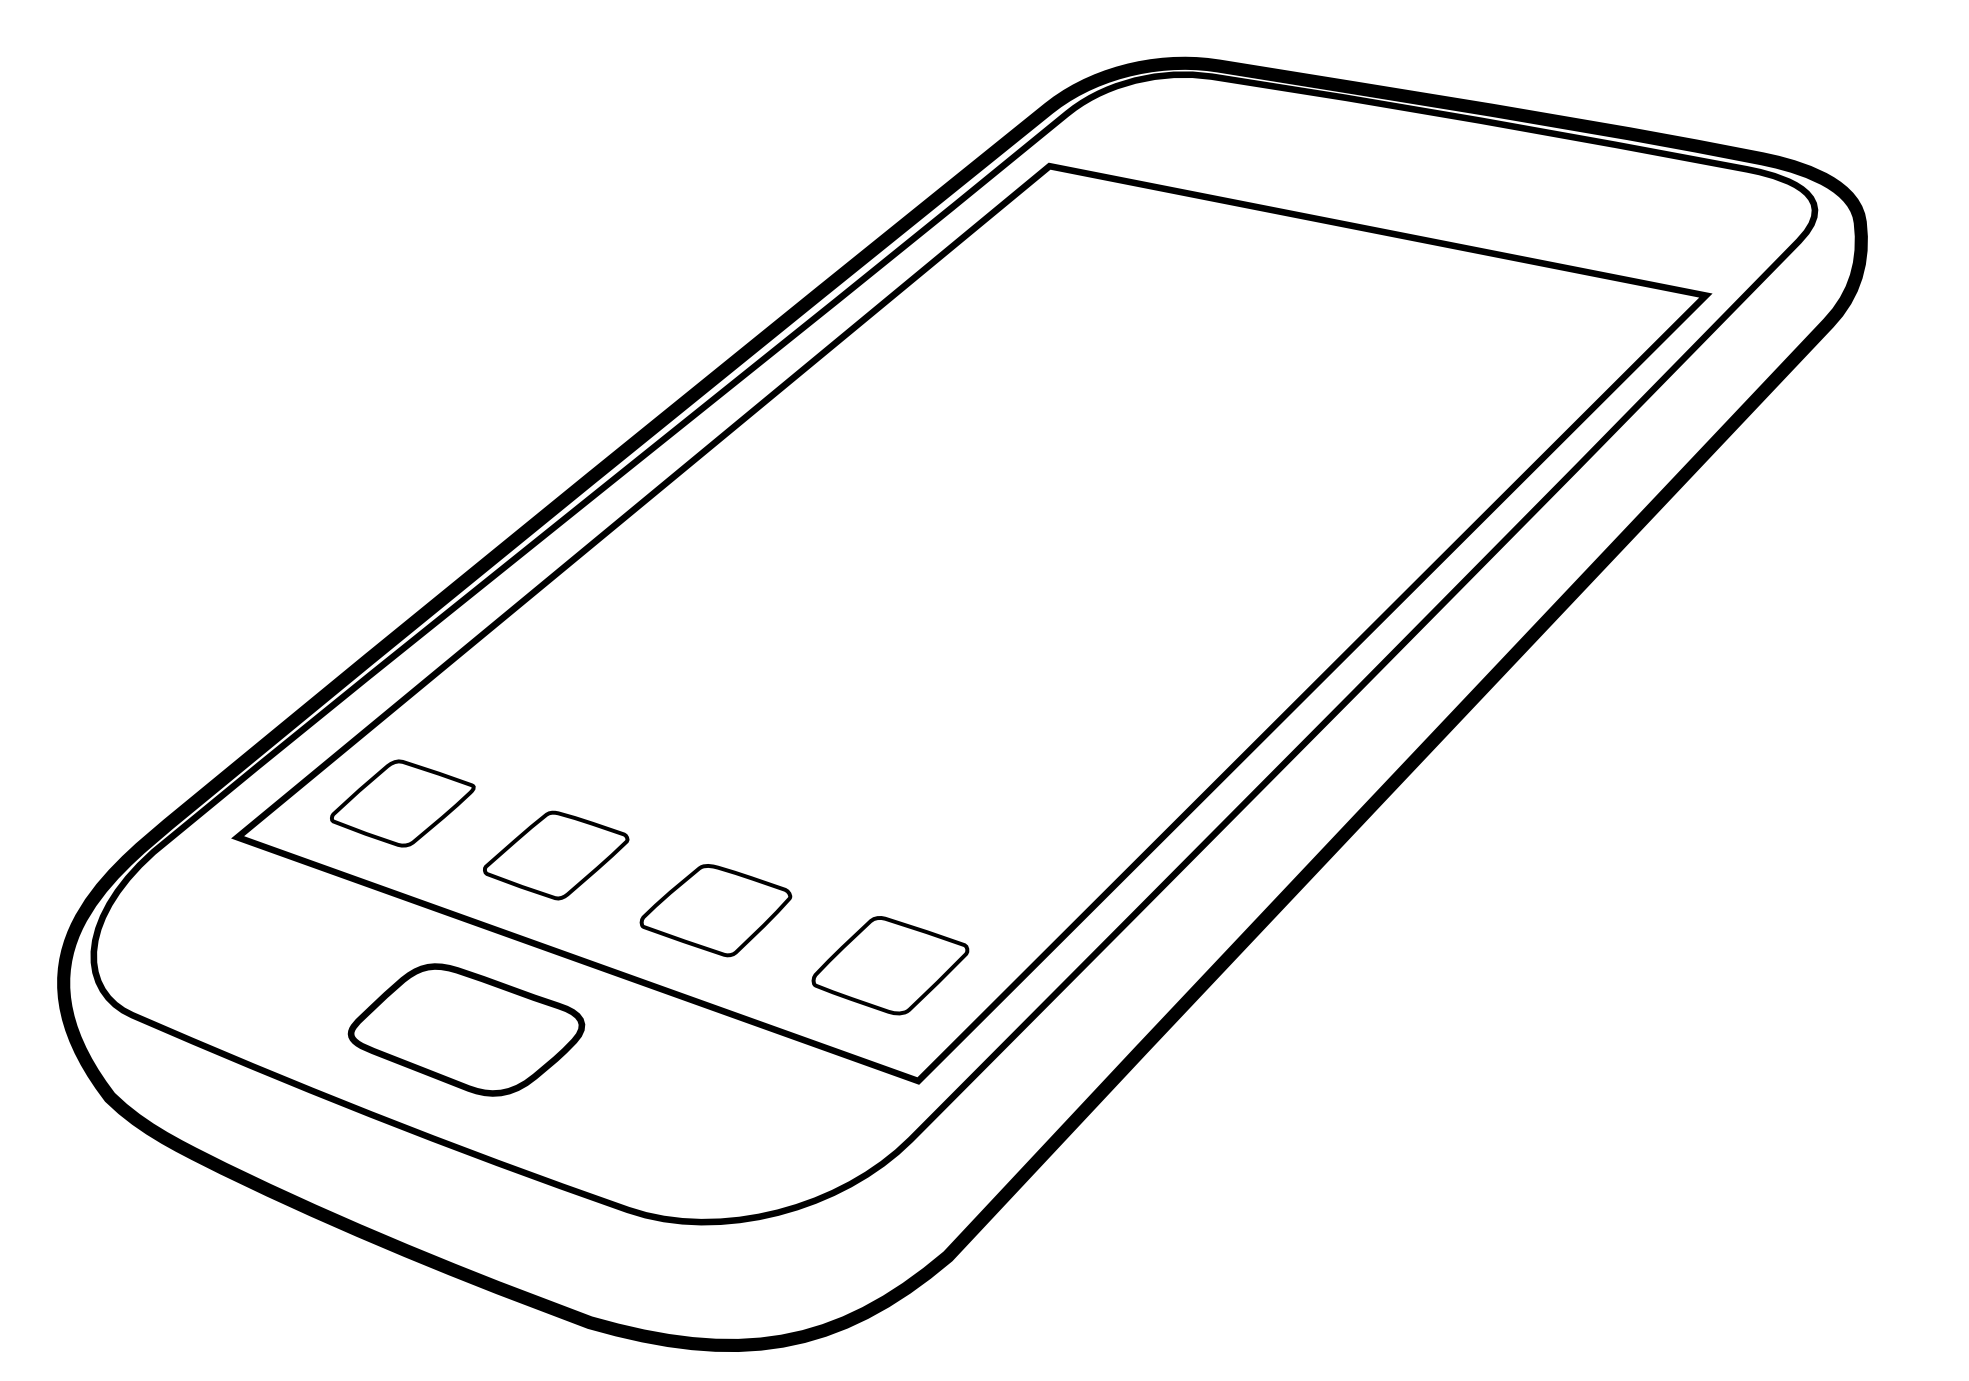 Iphone Black White Line Art Scalable Vector Graphics Svg Clip Art